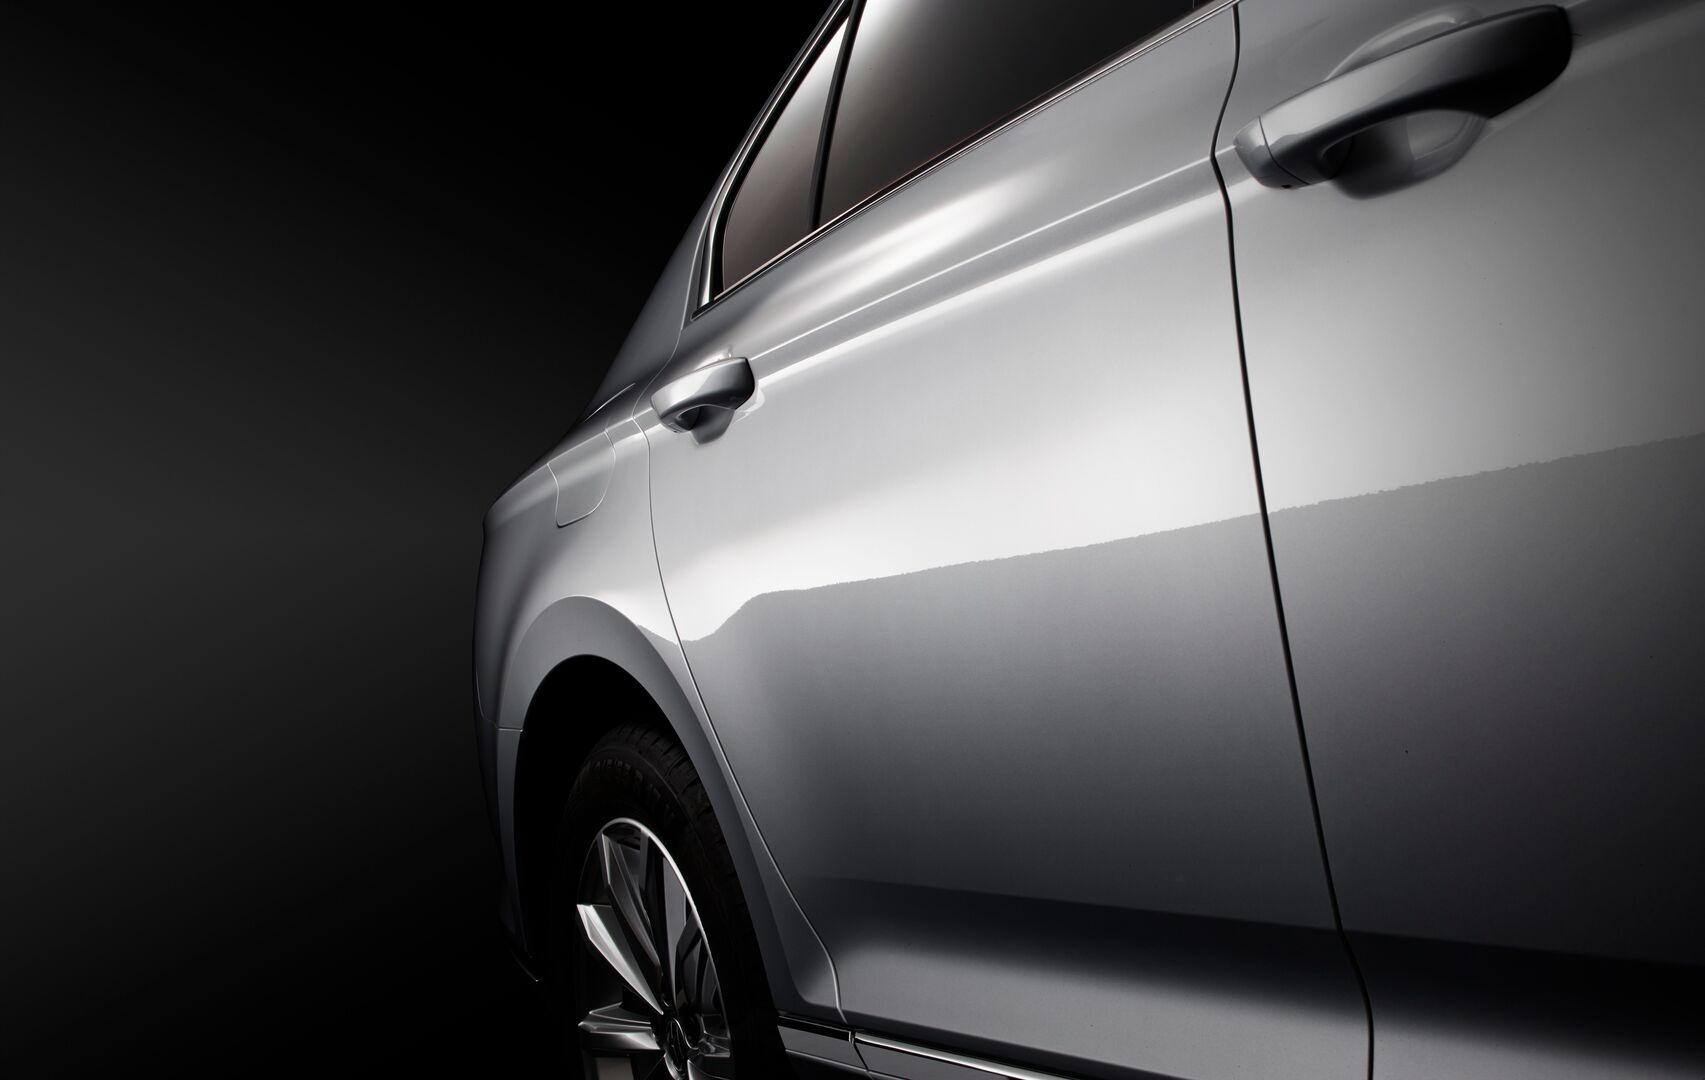 Auto body panel featuring Serica premium surface quality.